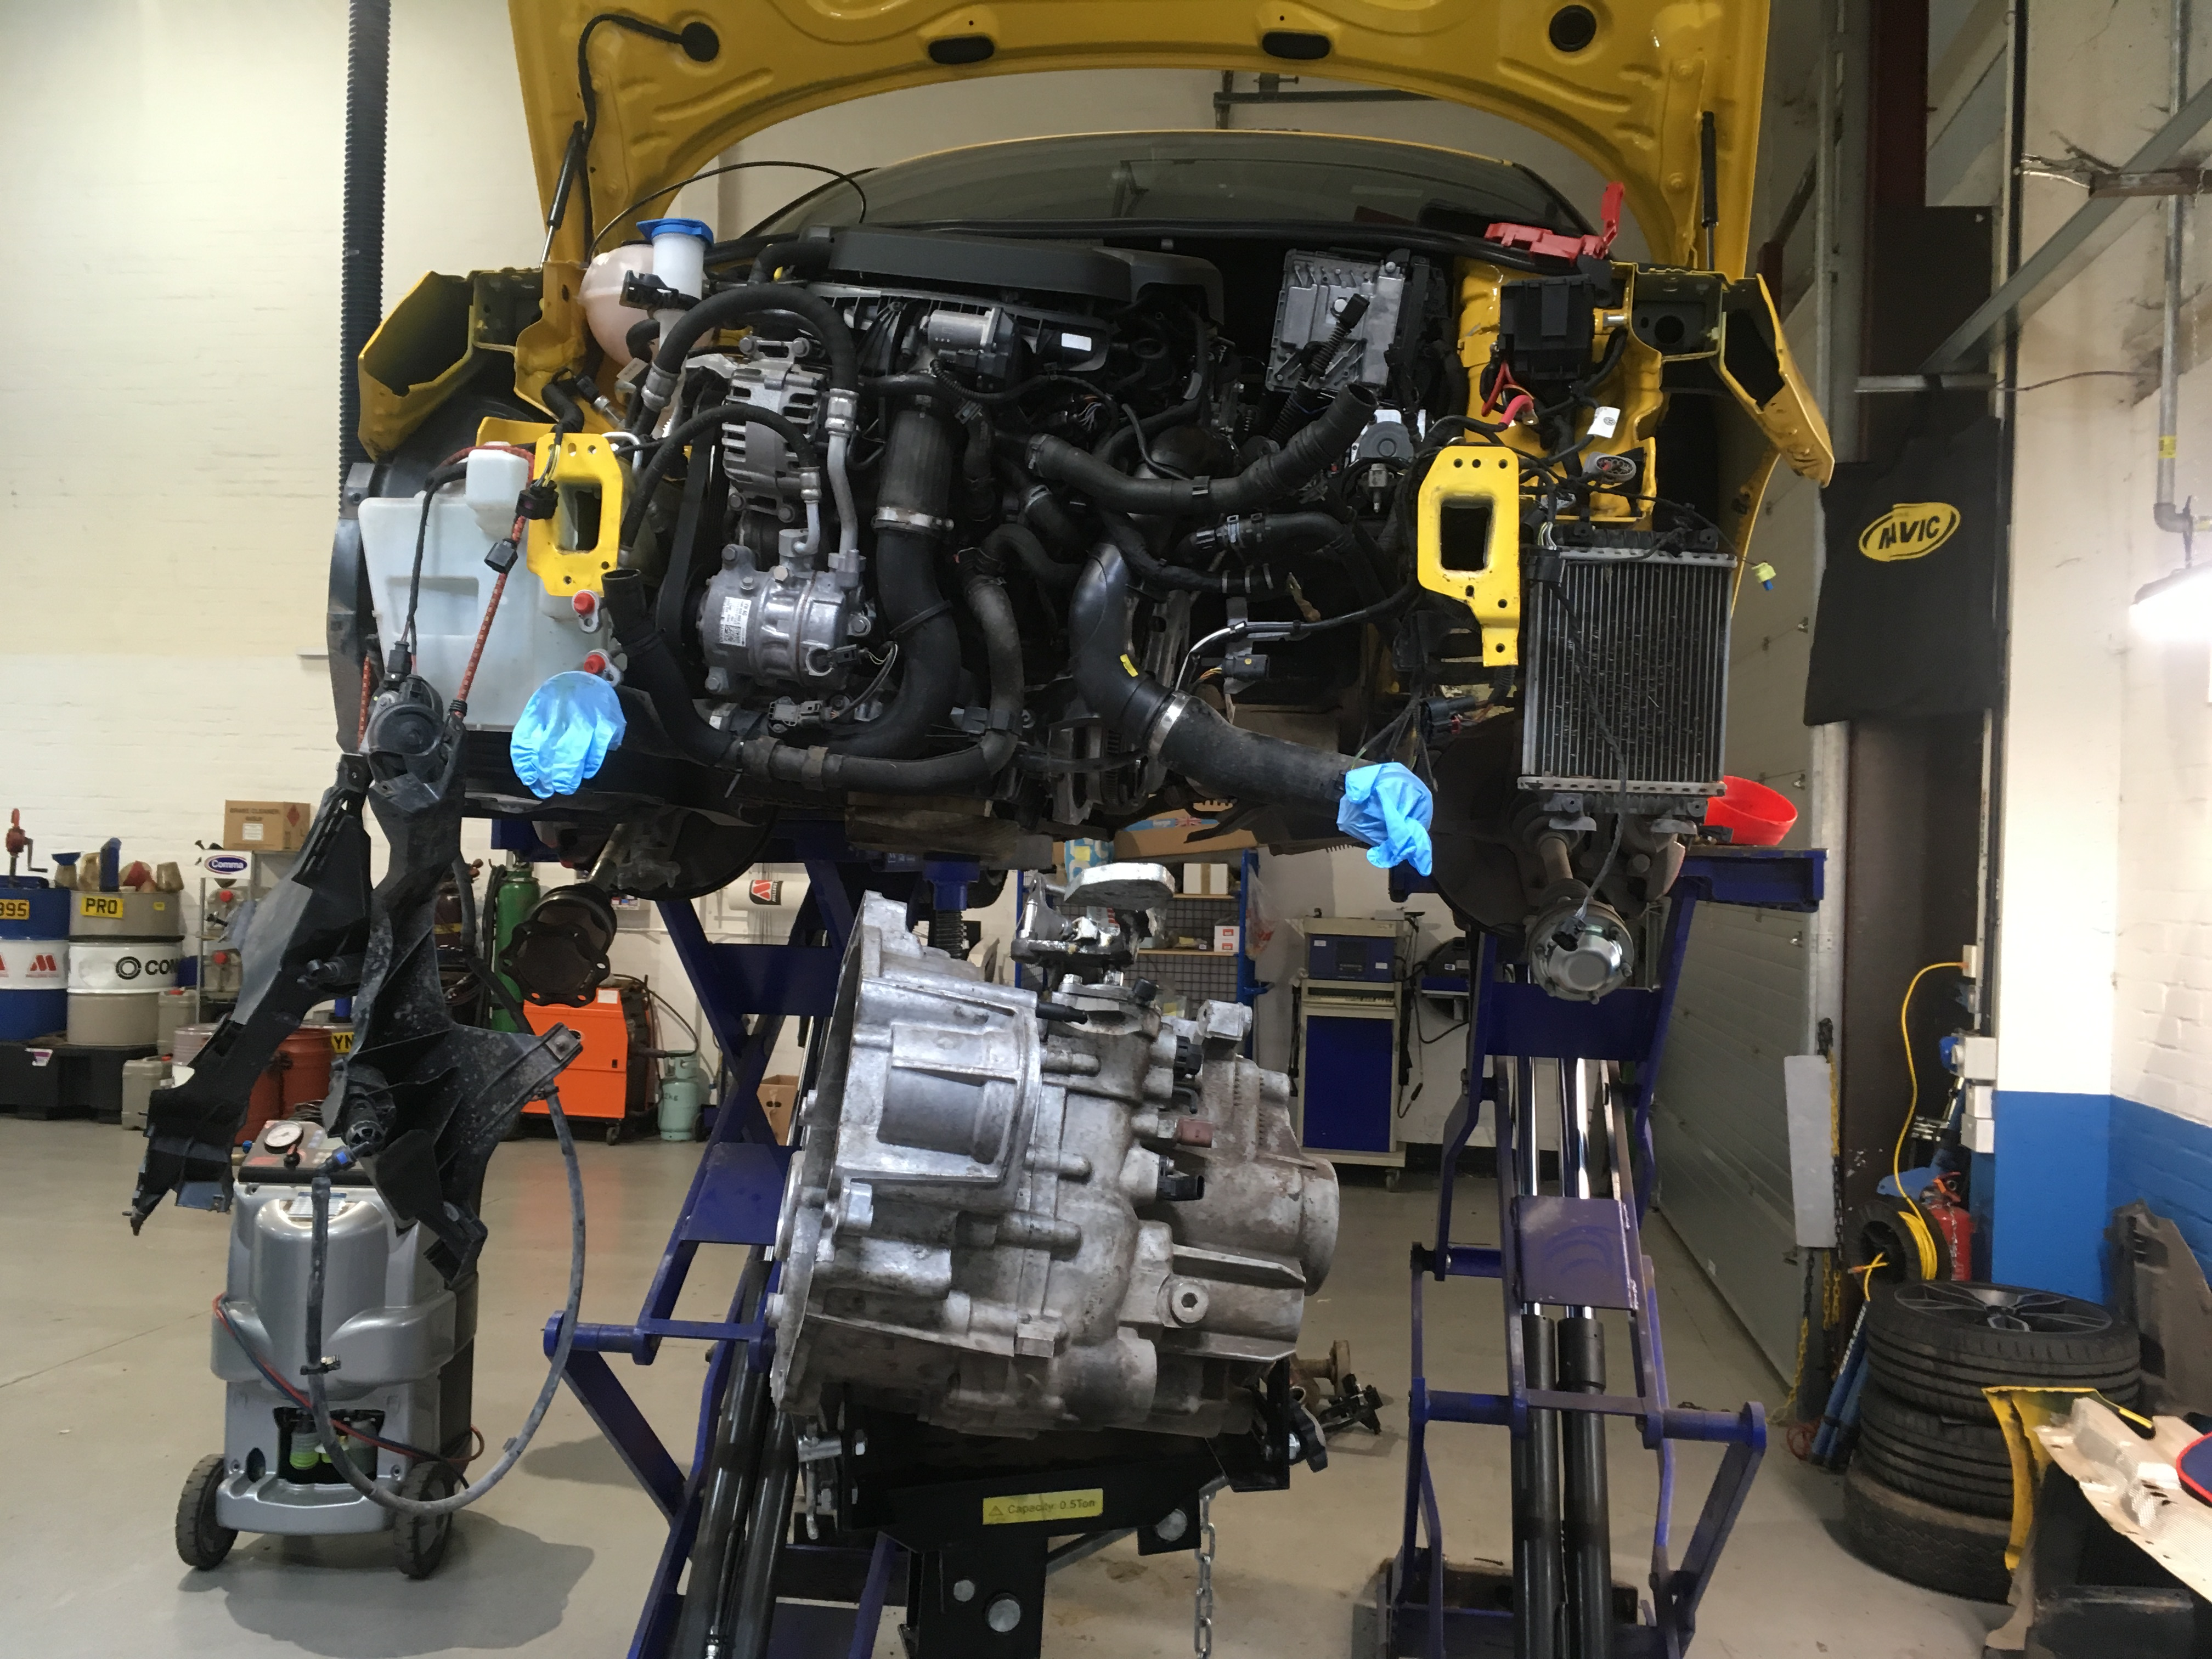 Audi Specialist Hereford